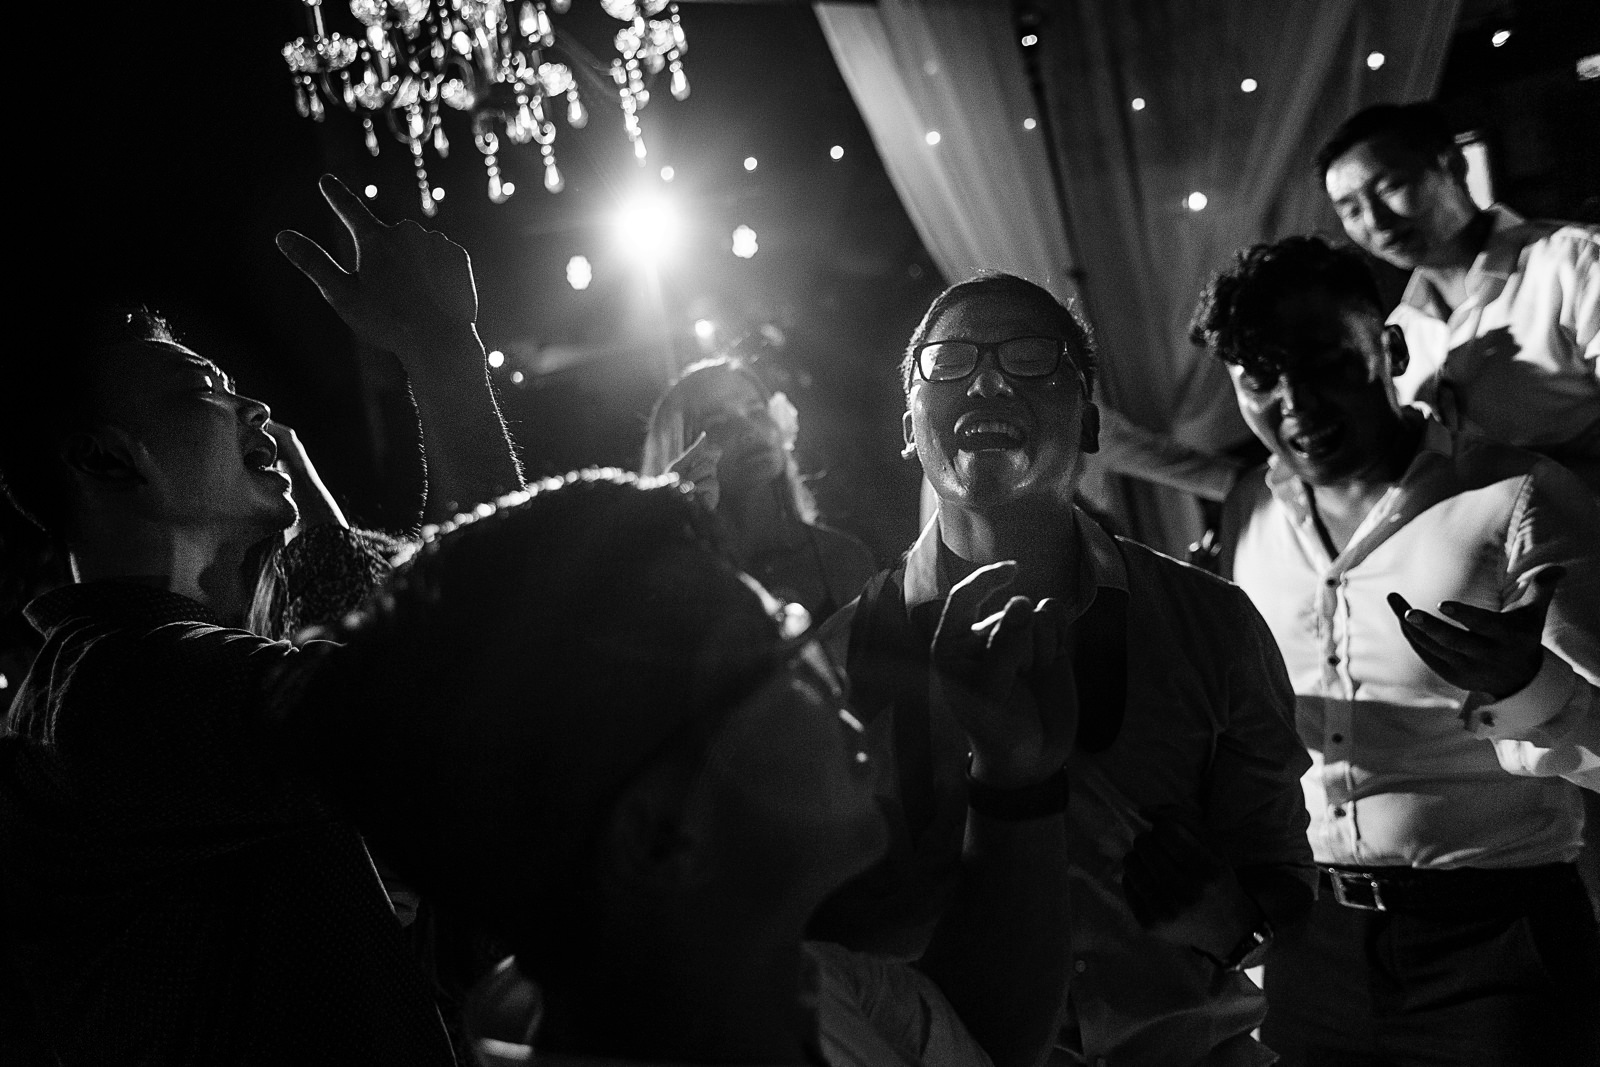 Wedding guests having the time of their lives on the dance floor at a wedding in Martoca Beach Garden.